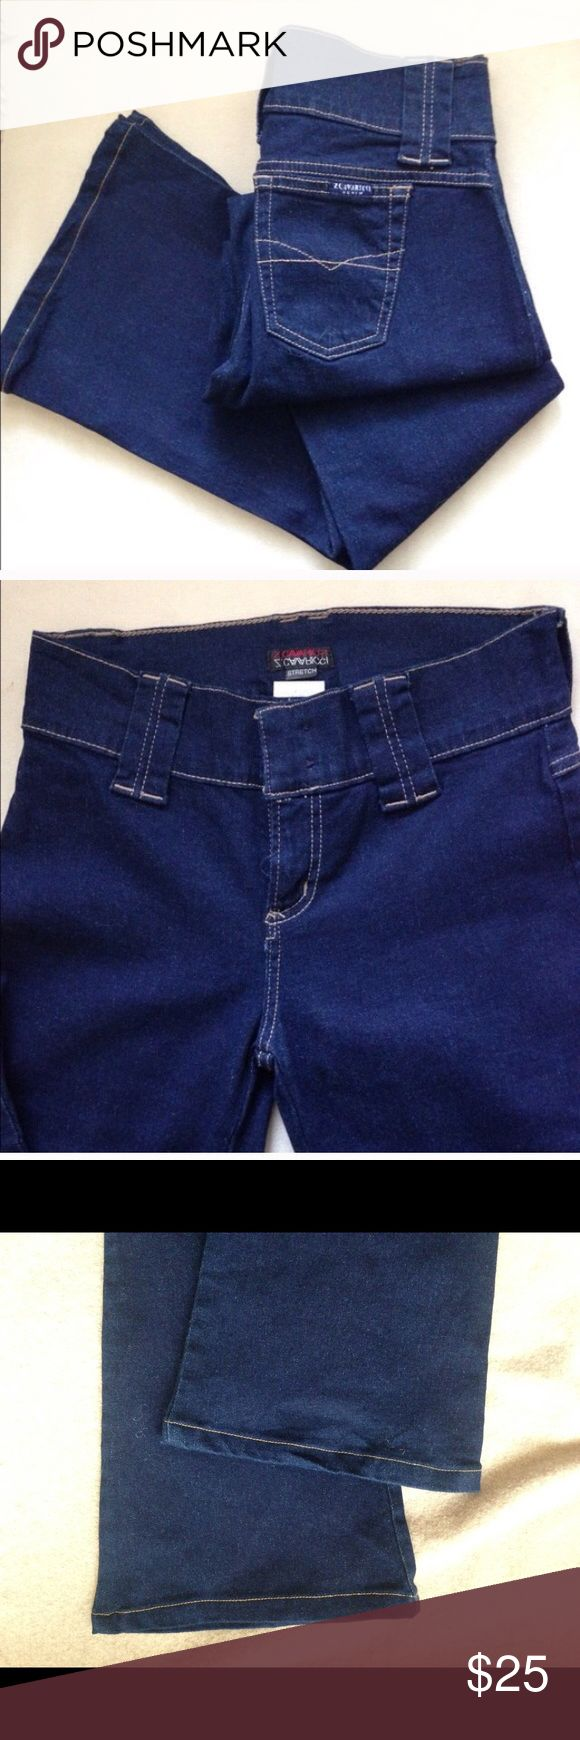 "Z. Cavaricci** Blue denim Flare Jeans Stretch 2 pocket, 5-hoops (3-1/4"" wide) on waistband. 2 hidden front buttons. Waist 28"", Rise 9"", Leg length 30"". Materials: Cotton 96% Spandex 3%. Excellent condition worn only a few times. Imported size 3 (US size 28). Sorry no Trades Z Cavaricci Jeans Flare & Wide Leg"